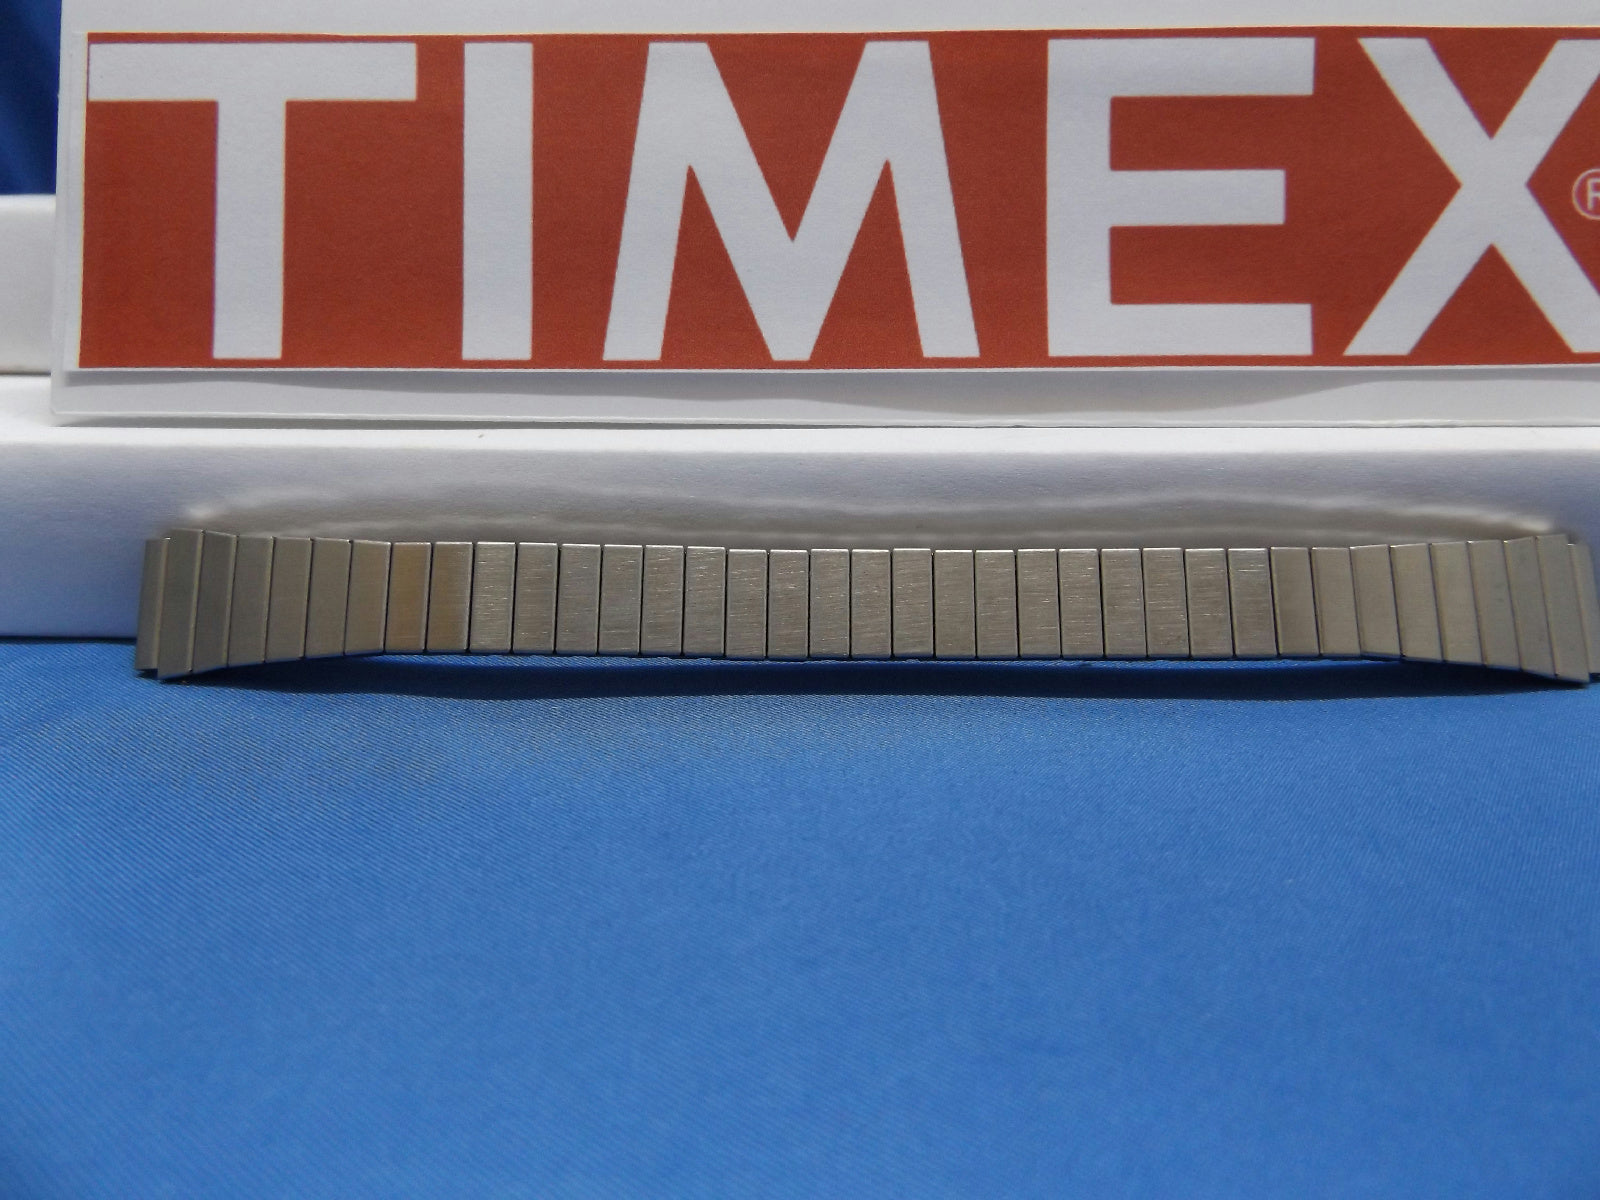 Timex watchband 13mm Silver Tone Expansion/Stretch Steel Bracelet Lds Watchband